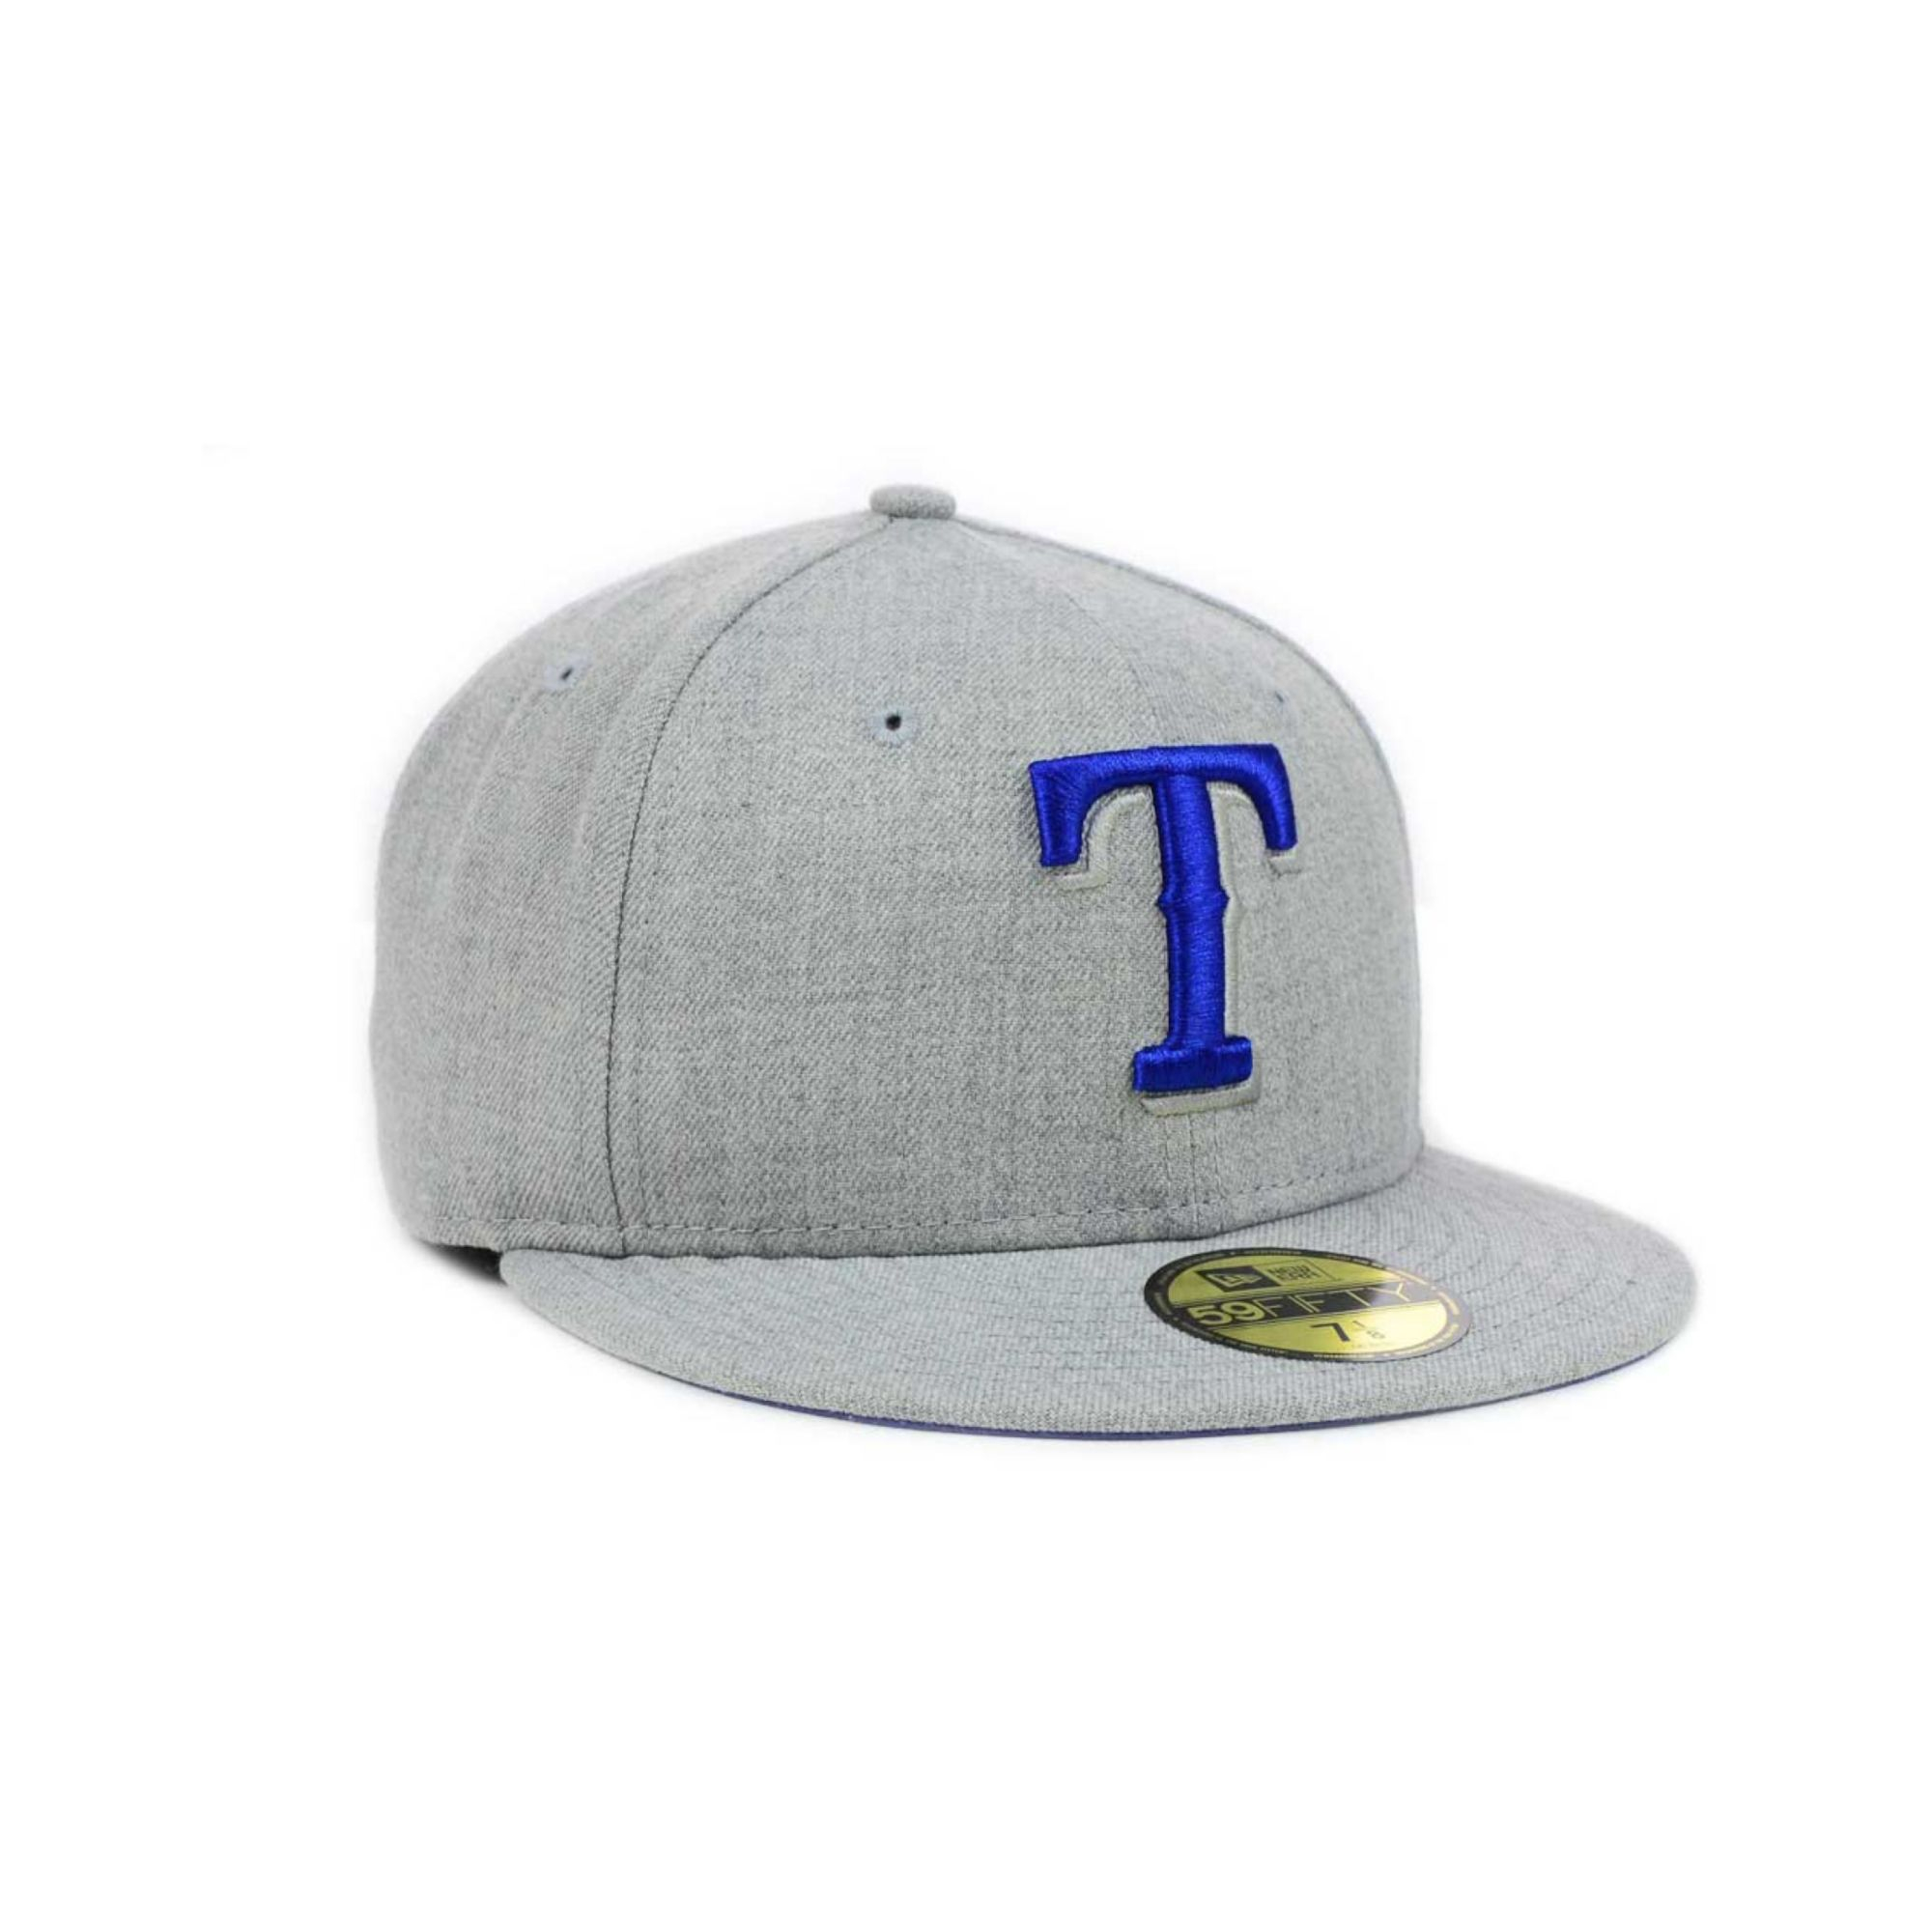 promo code 5bb8b d289a KTZ Texas Rangers Mlb Heather Basic 59fifty Cap in Gray for Men - Lyst